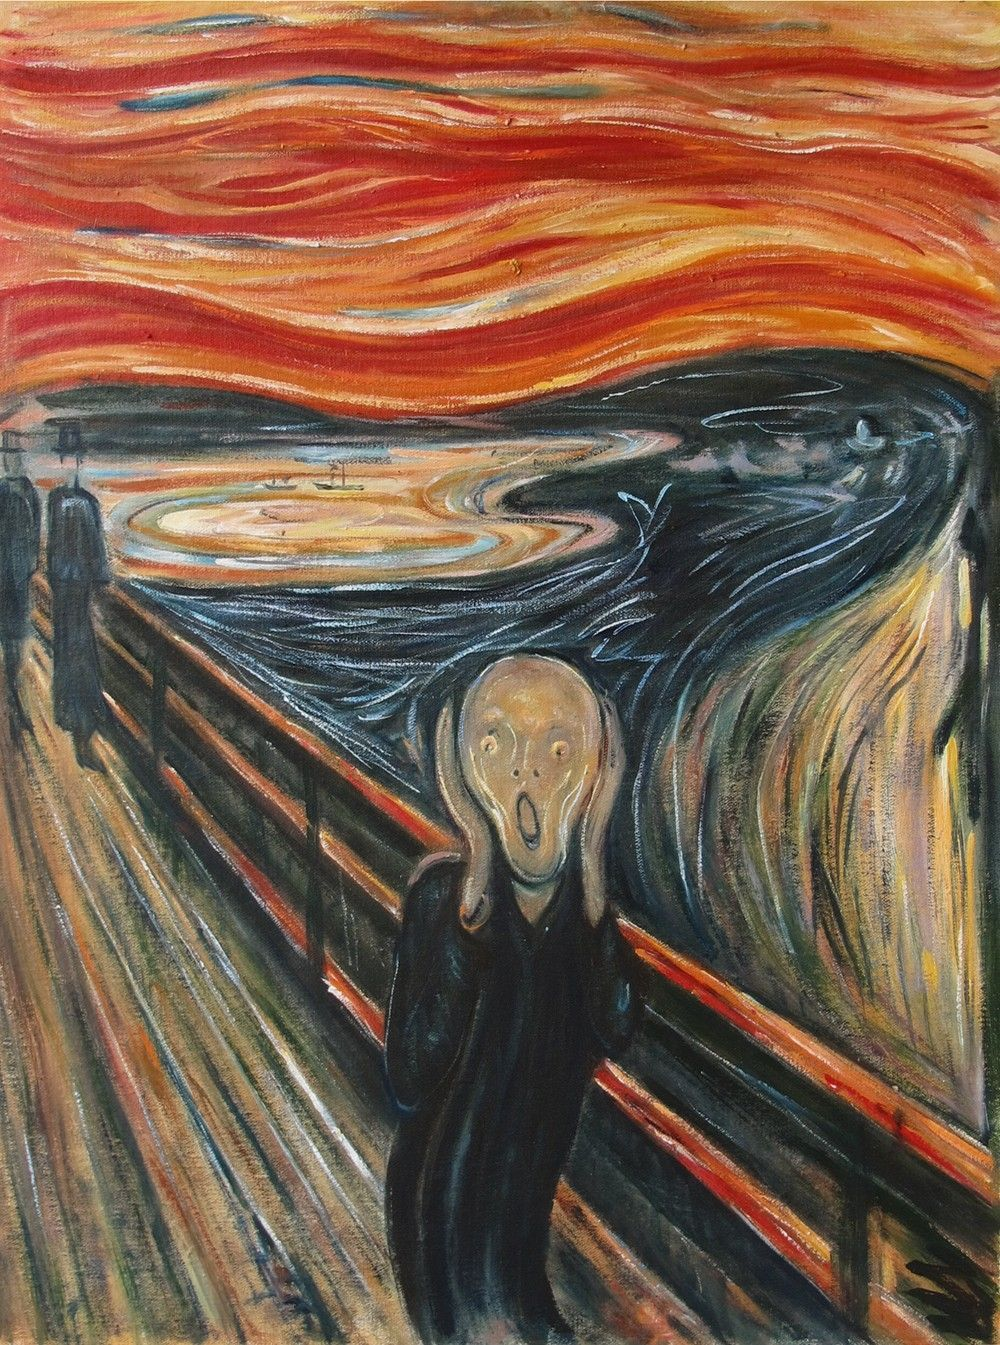 Oil painting (Scream) by Edvard Munch famous oil painting